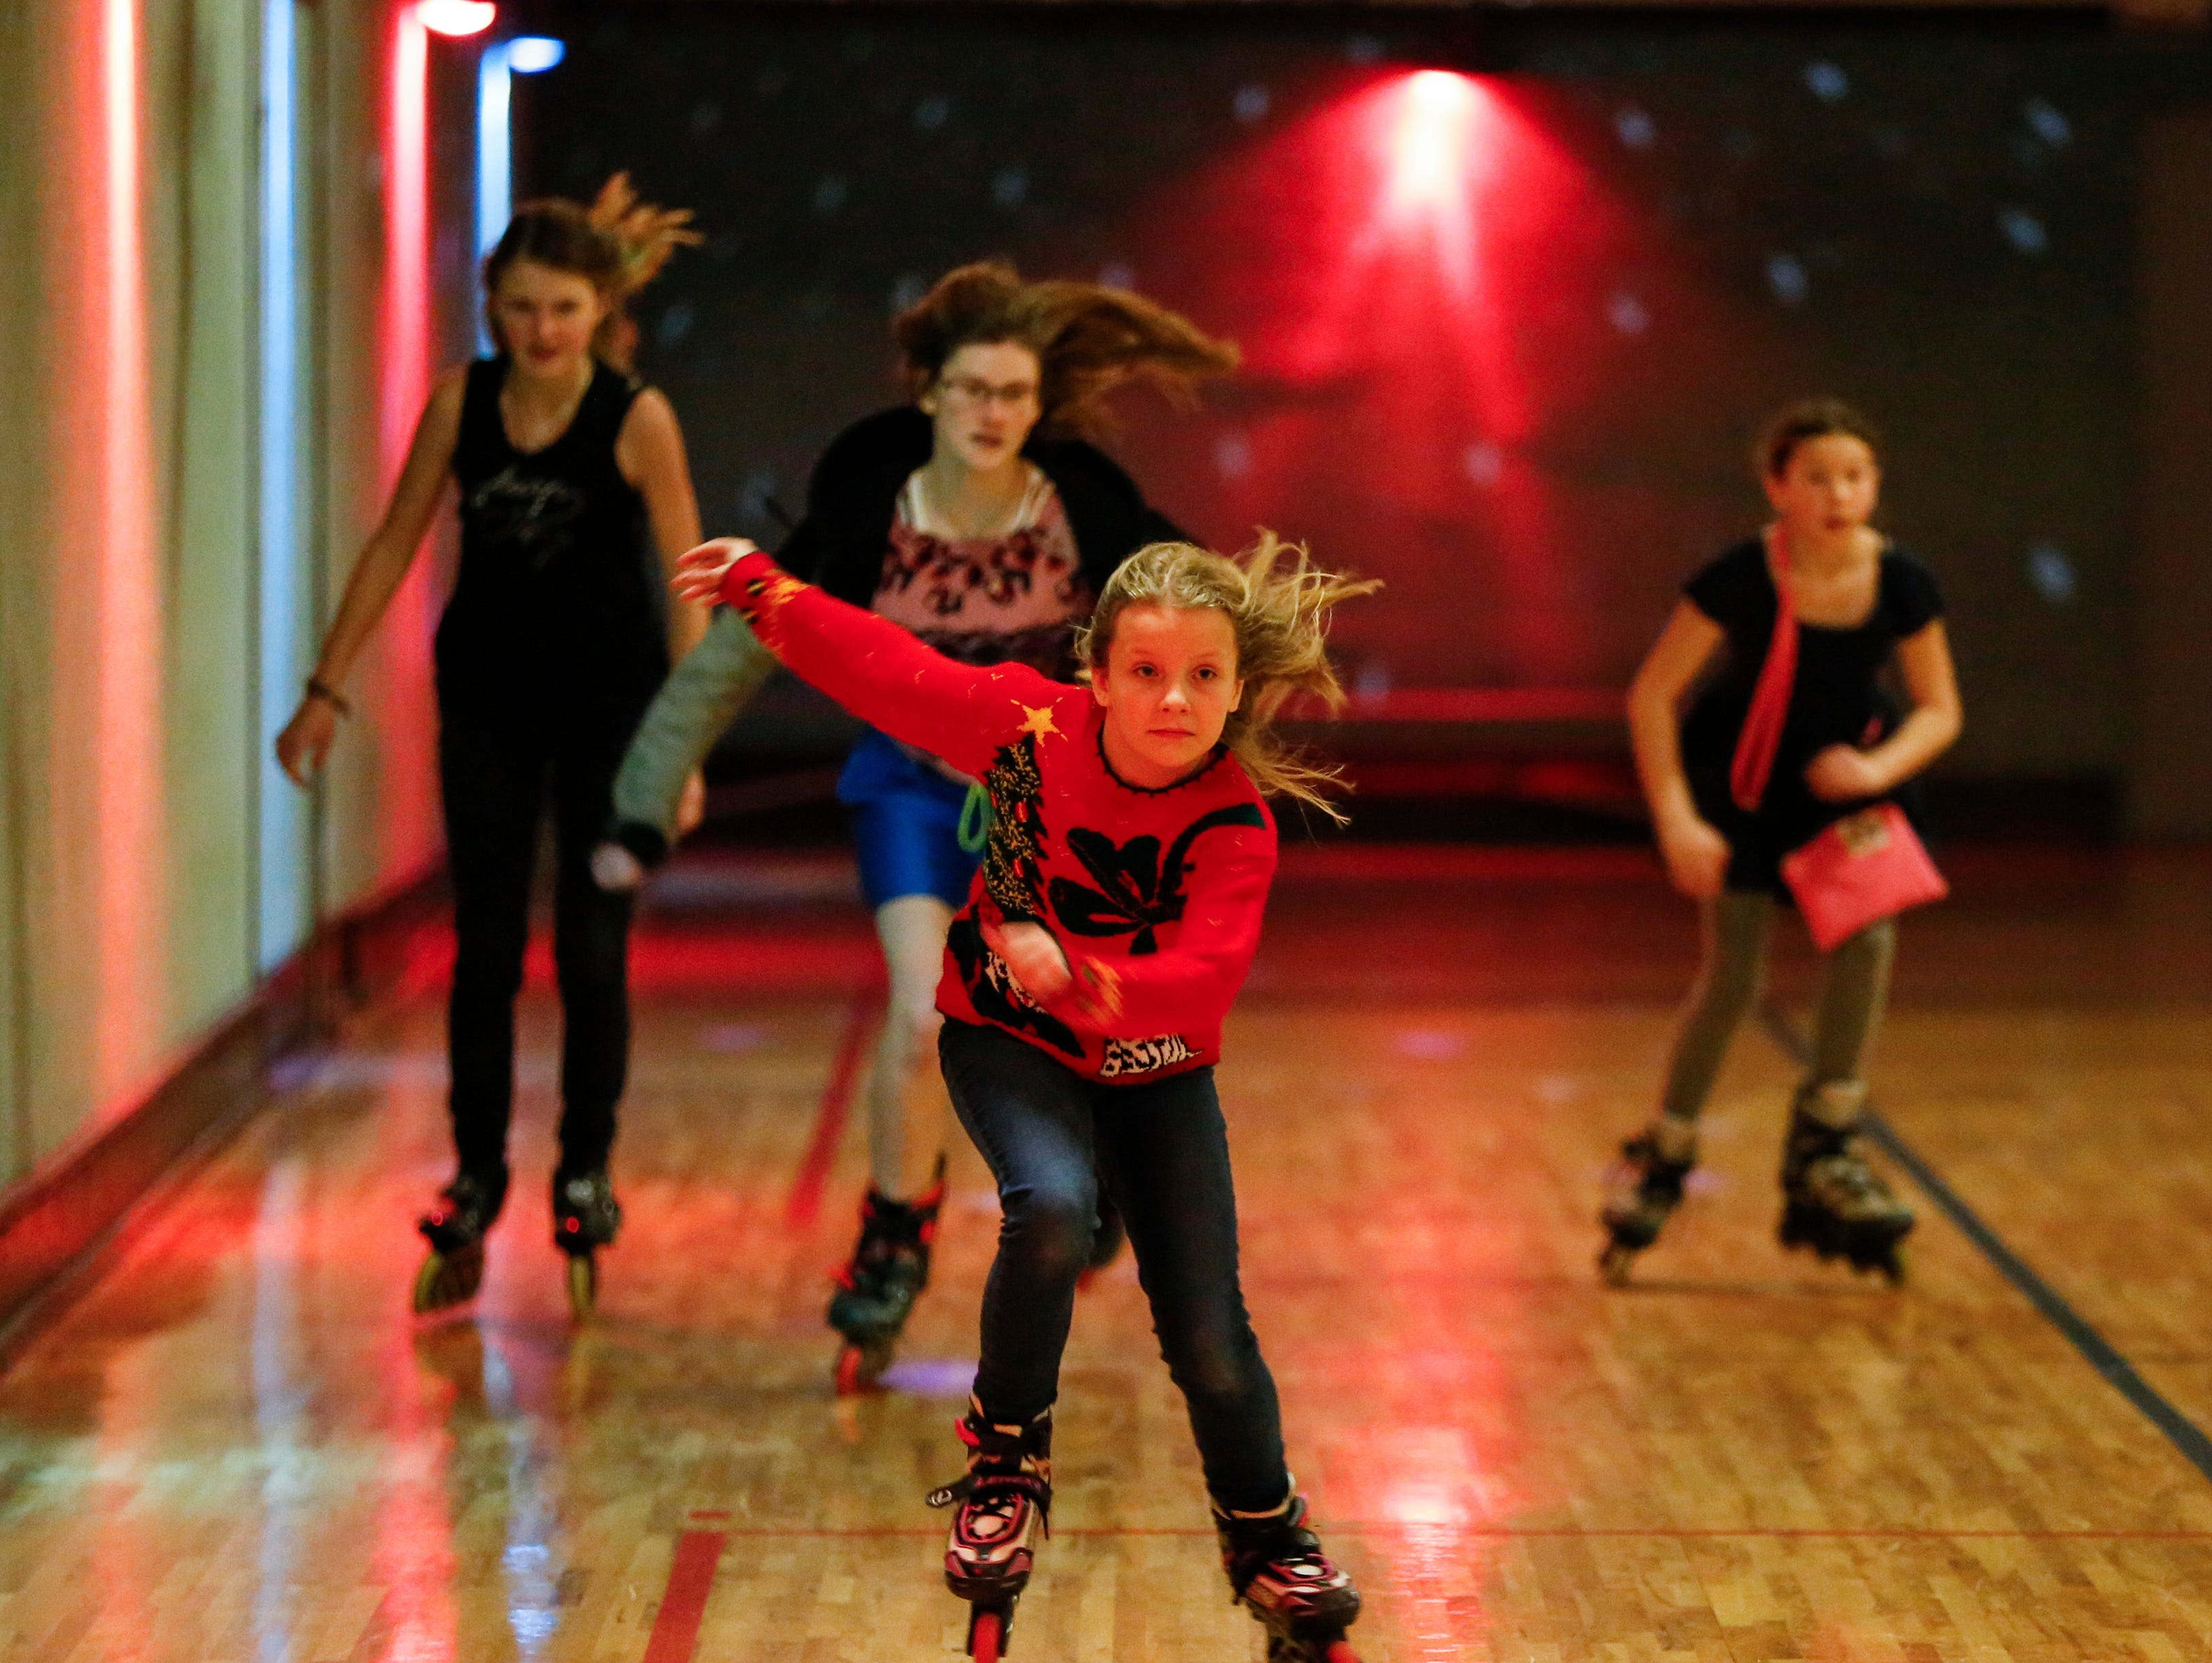 Jillian Hoffman, 11, leads the girls race during the 20th annual Santa Skate at Rollaire Skate Center Saturday, December 15, 2018, in Manitowoc, Wis. Joshua Clark/USA TODAY NETWORK-Wisconsin